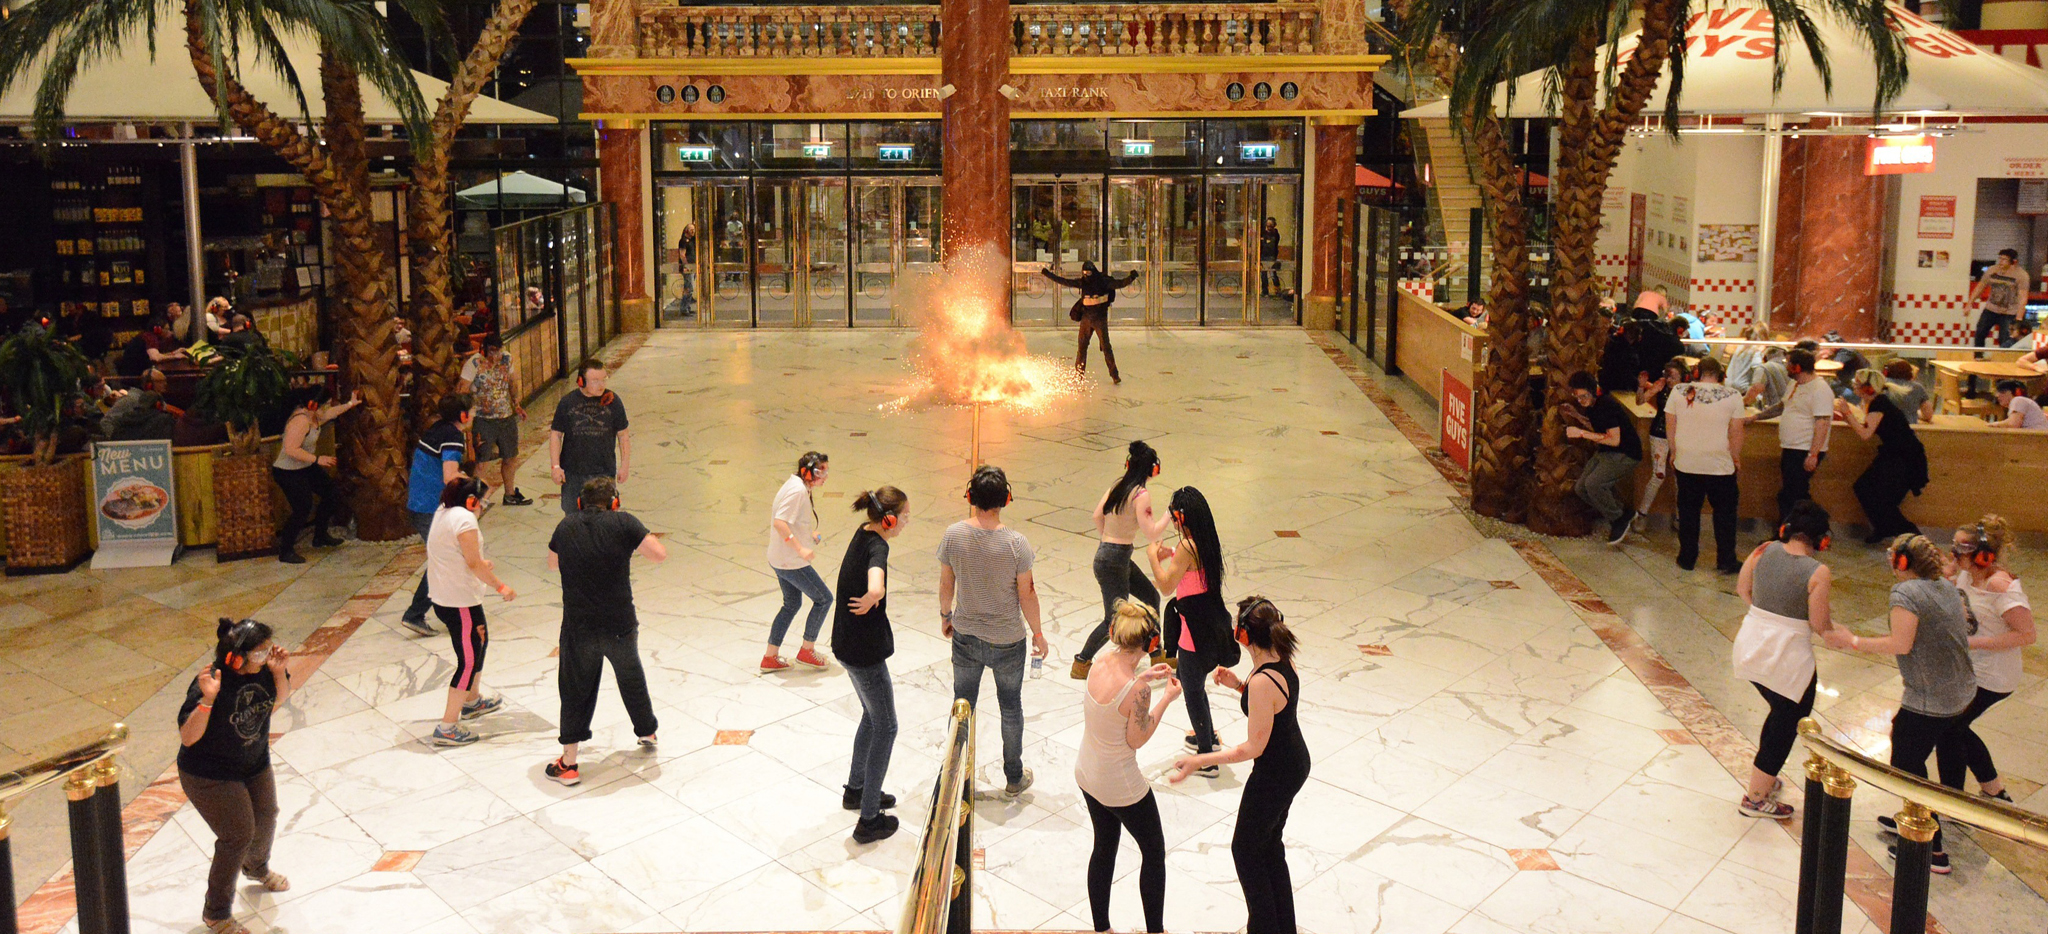 Emergency forces and shoppers take place in a simulated terror attack at the Trafford Centre on 10 May, 2016 in Manchester, England